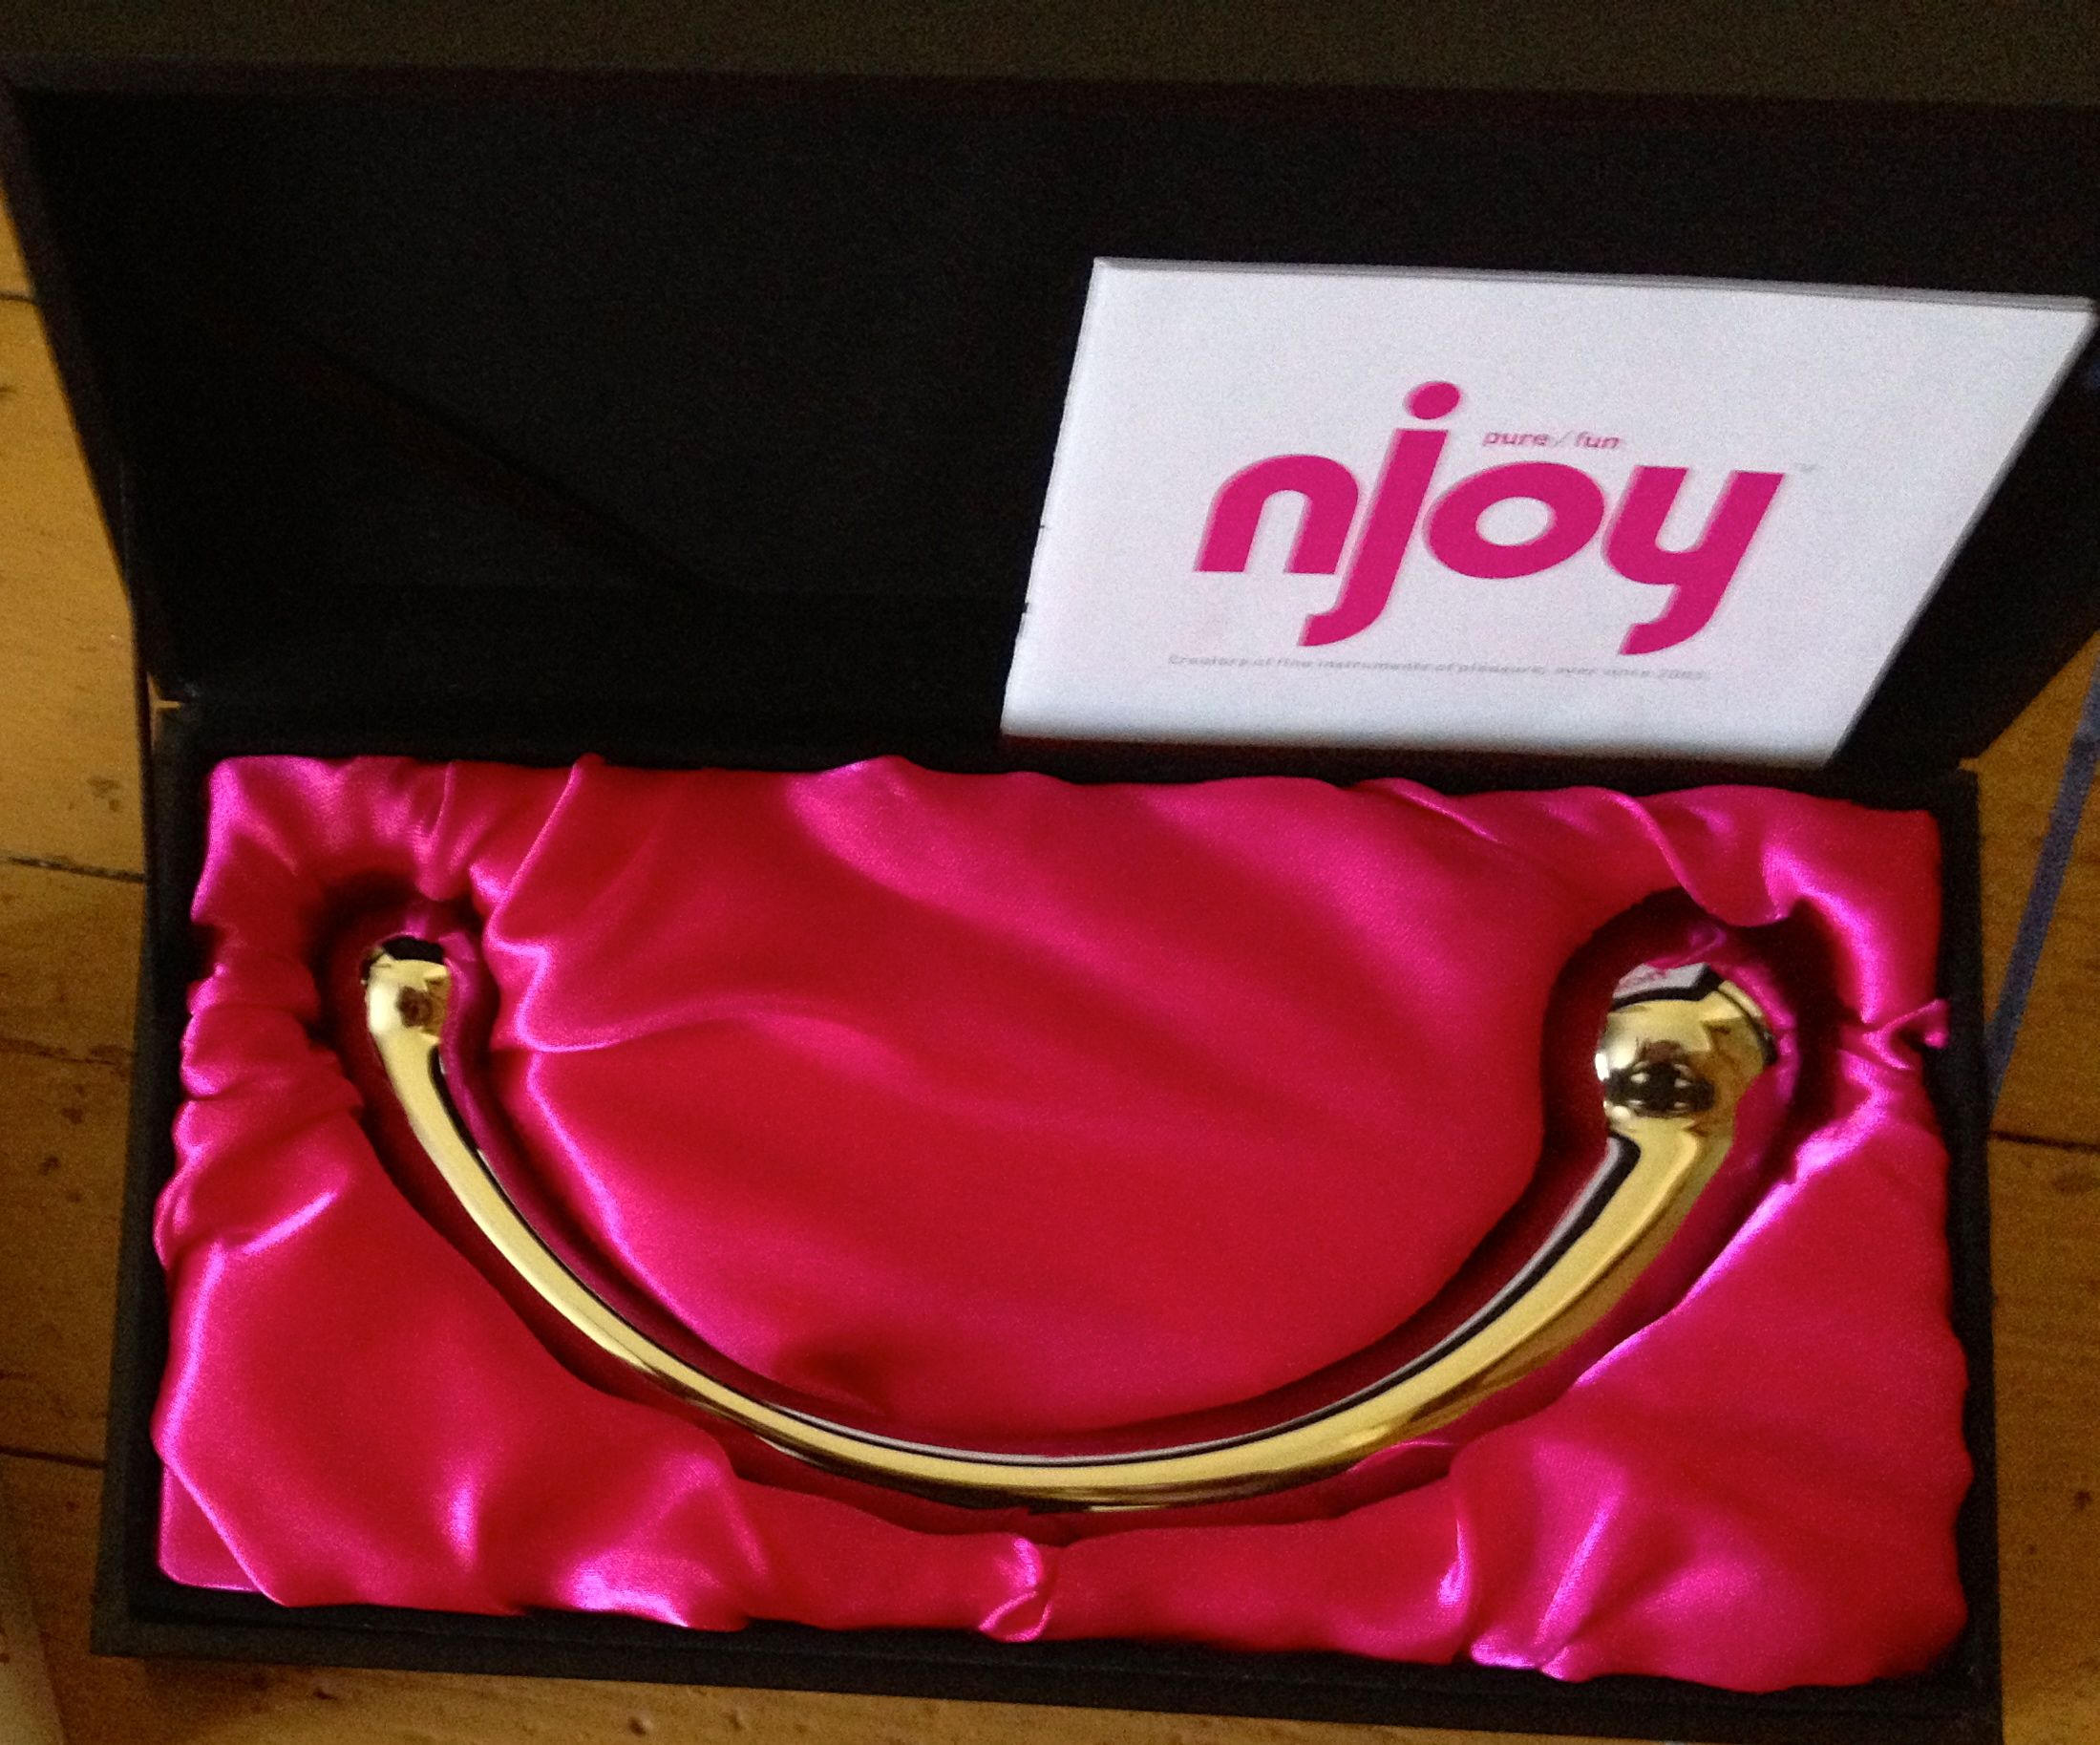 Review: Njoy Pure Wand – The Toy, The Myth, The Legend